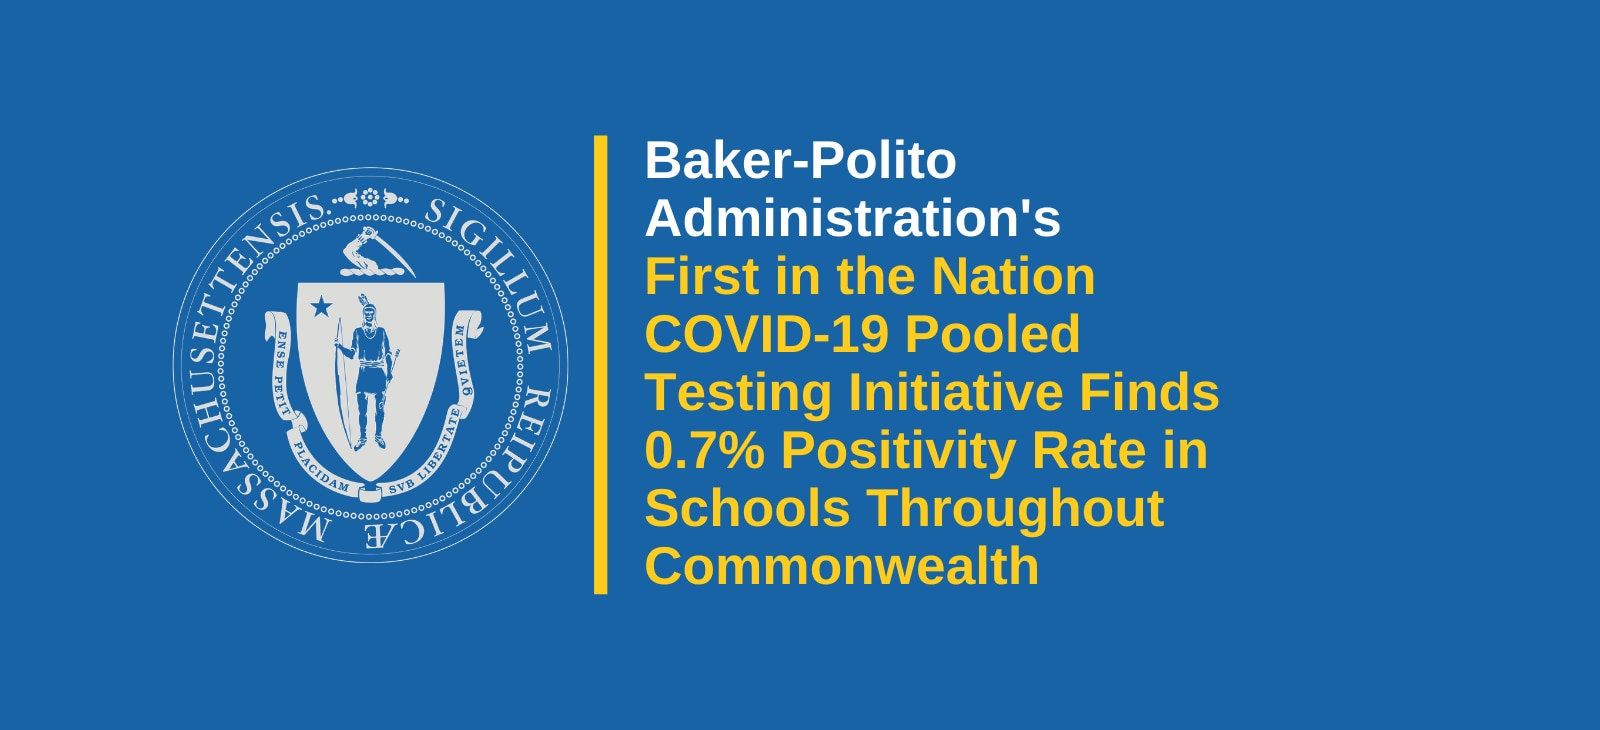 Baker-Polito Administration's First in the Nation COVID-19 Pooled Testing Initiative Finds 0.7% Positivity Rate in Schools Throughout Commonwealth